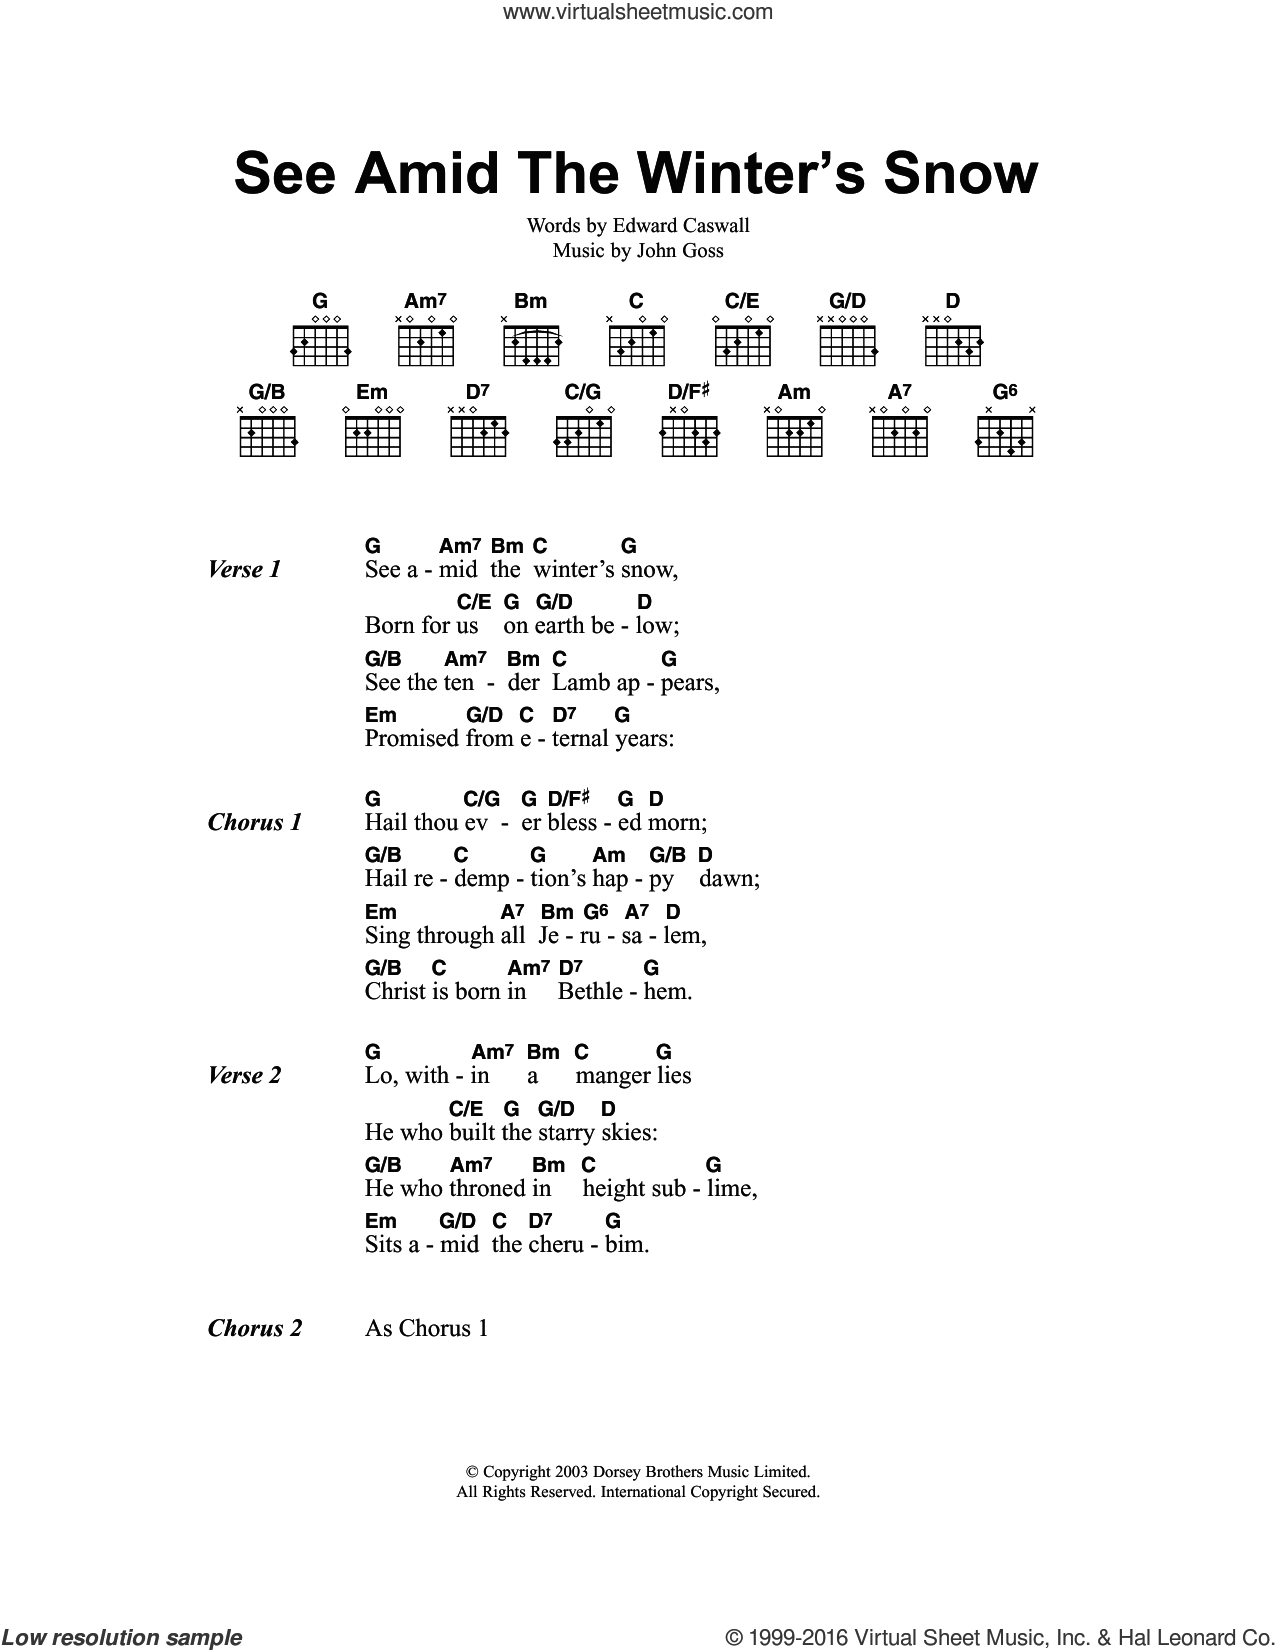 See Amid The Winter's Snow sheet music for guitar (chords) by Edward Caswall, Miscellaneous and John Goss, intermediate skill level